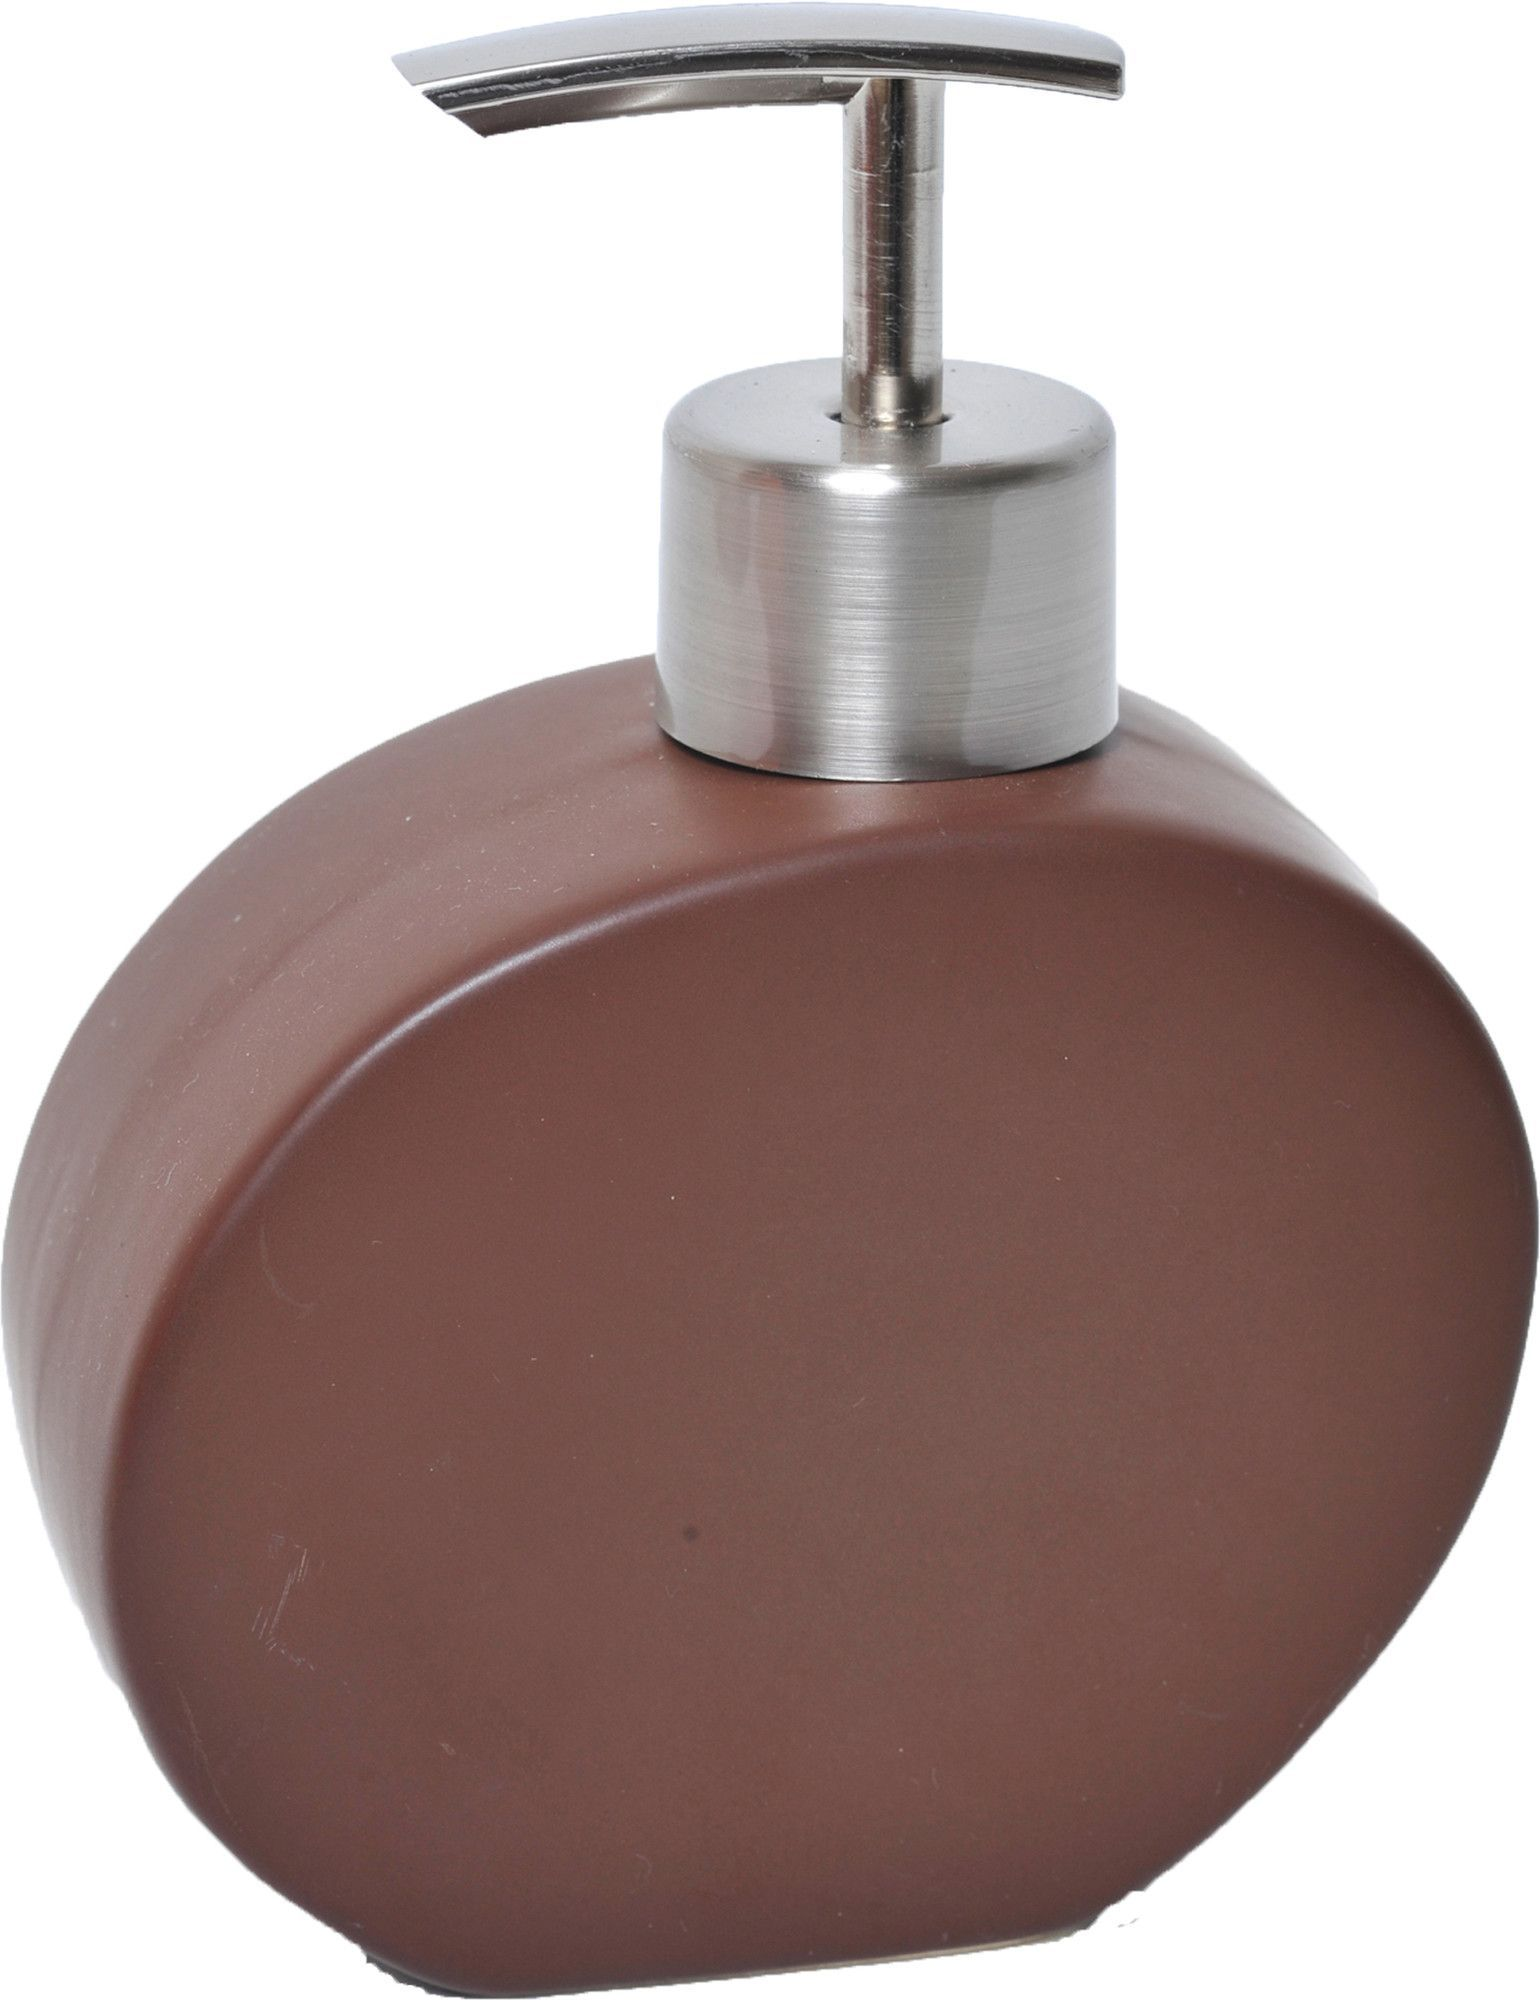 Stoneware bathroom accessories - Stoneware Bathroom Soap Dispenser